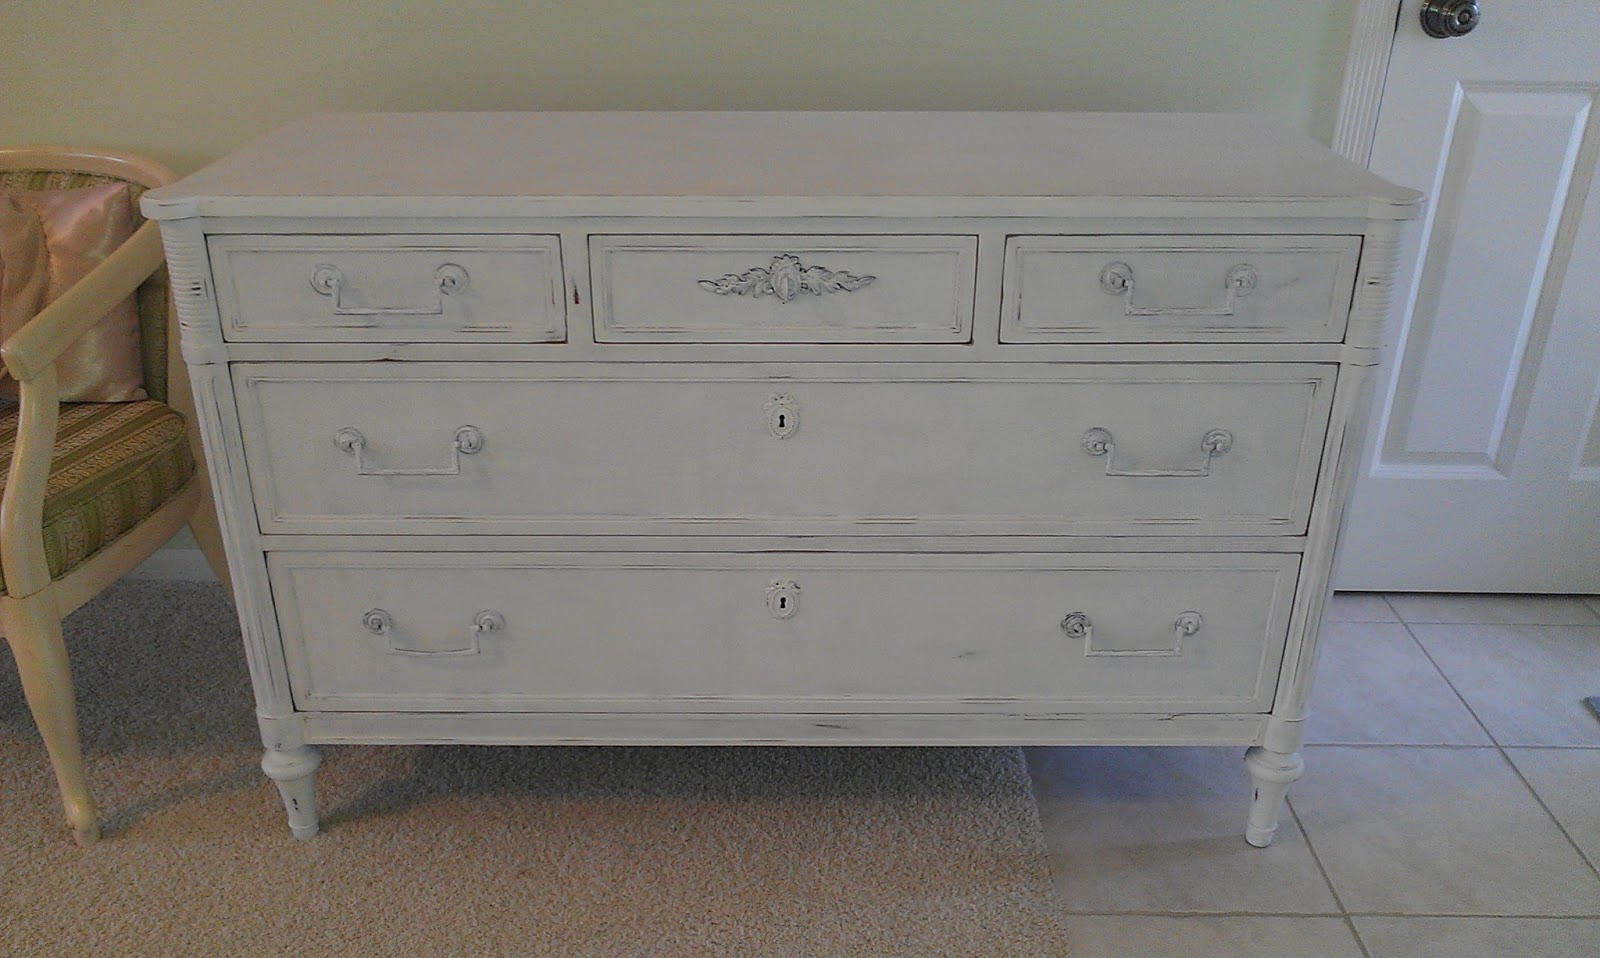 Thrifty Treasures White Shabby Chic Dresser. Shabby Chic Dresser White   BestDressers 2017